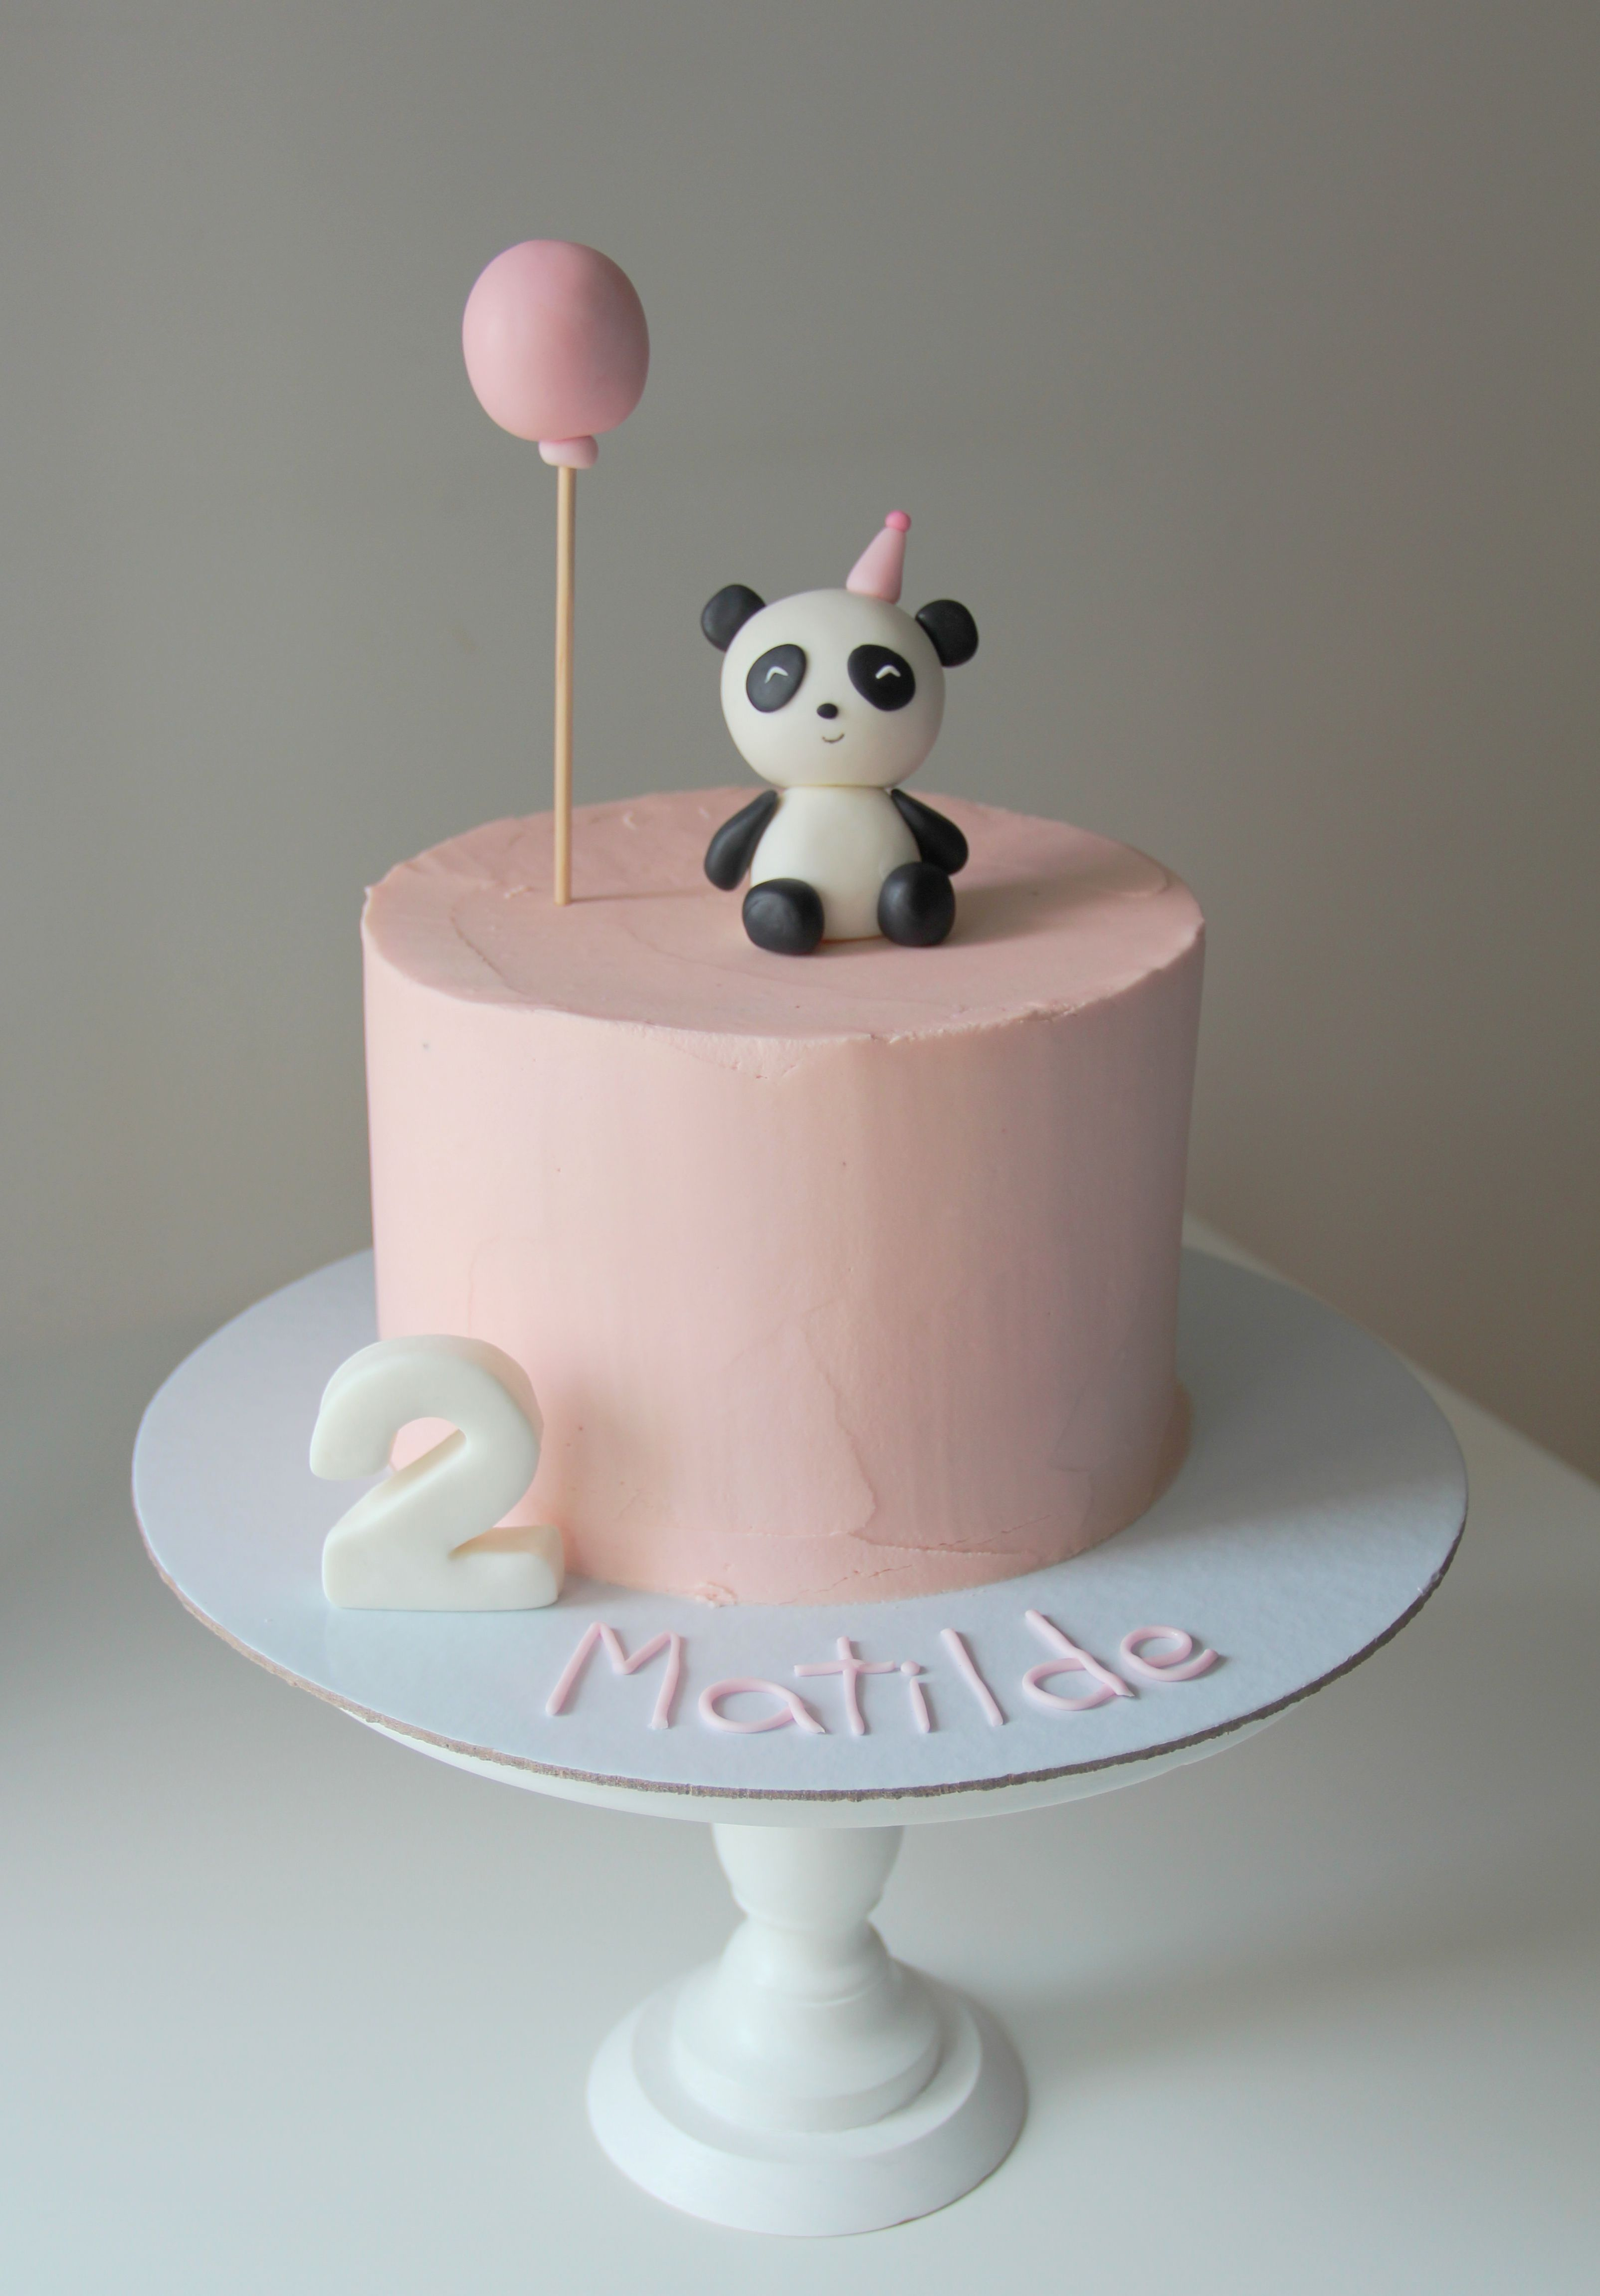 Panda Cake By Sugar Kids Cakes Panda Cakes Panda Birthday